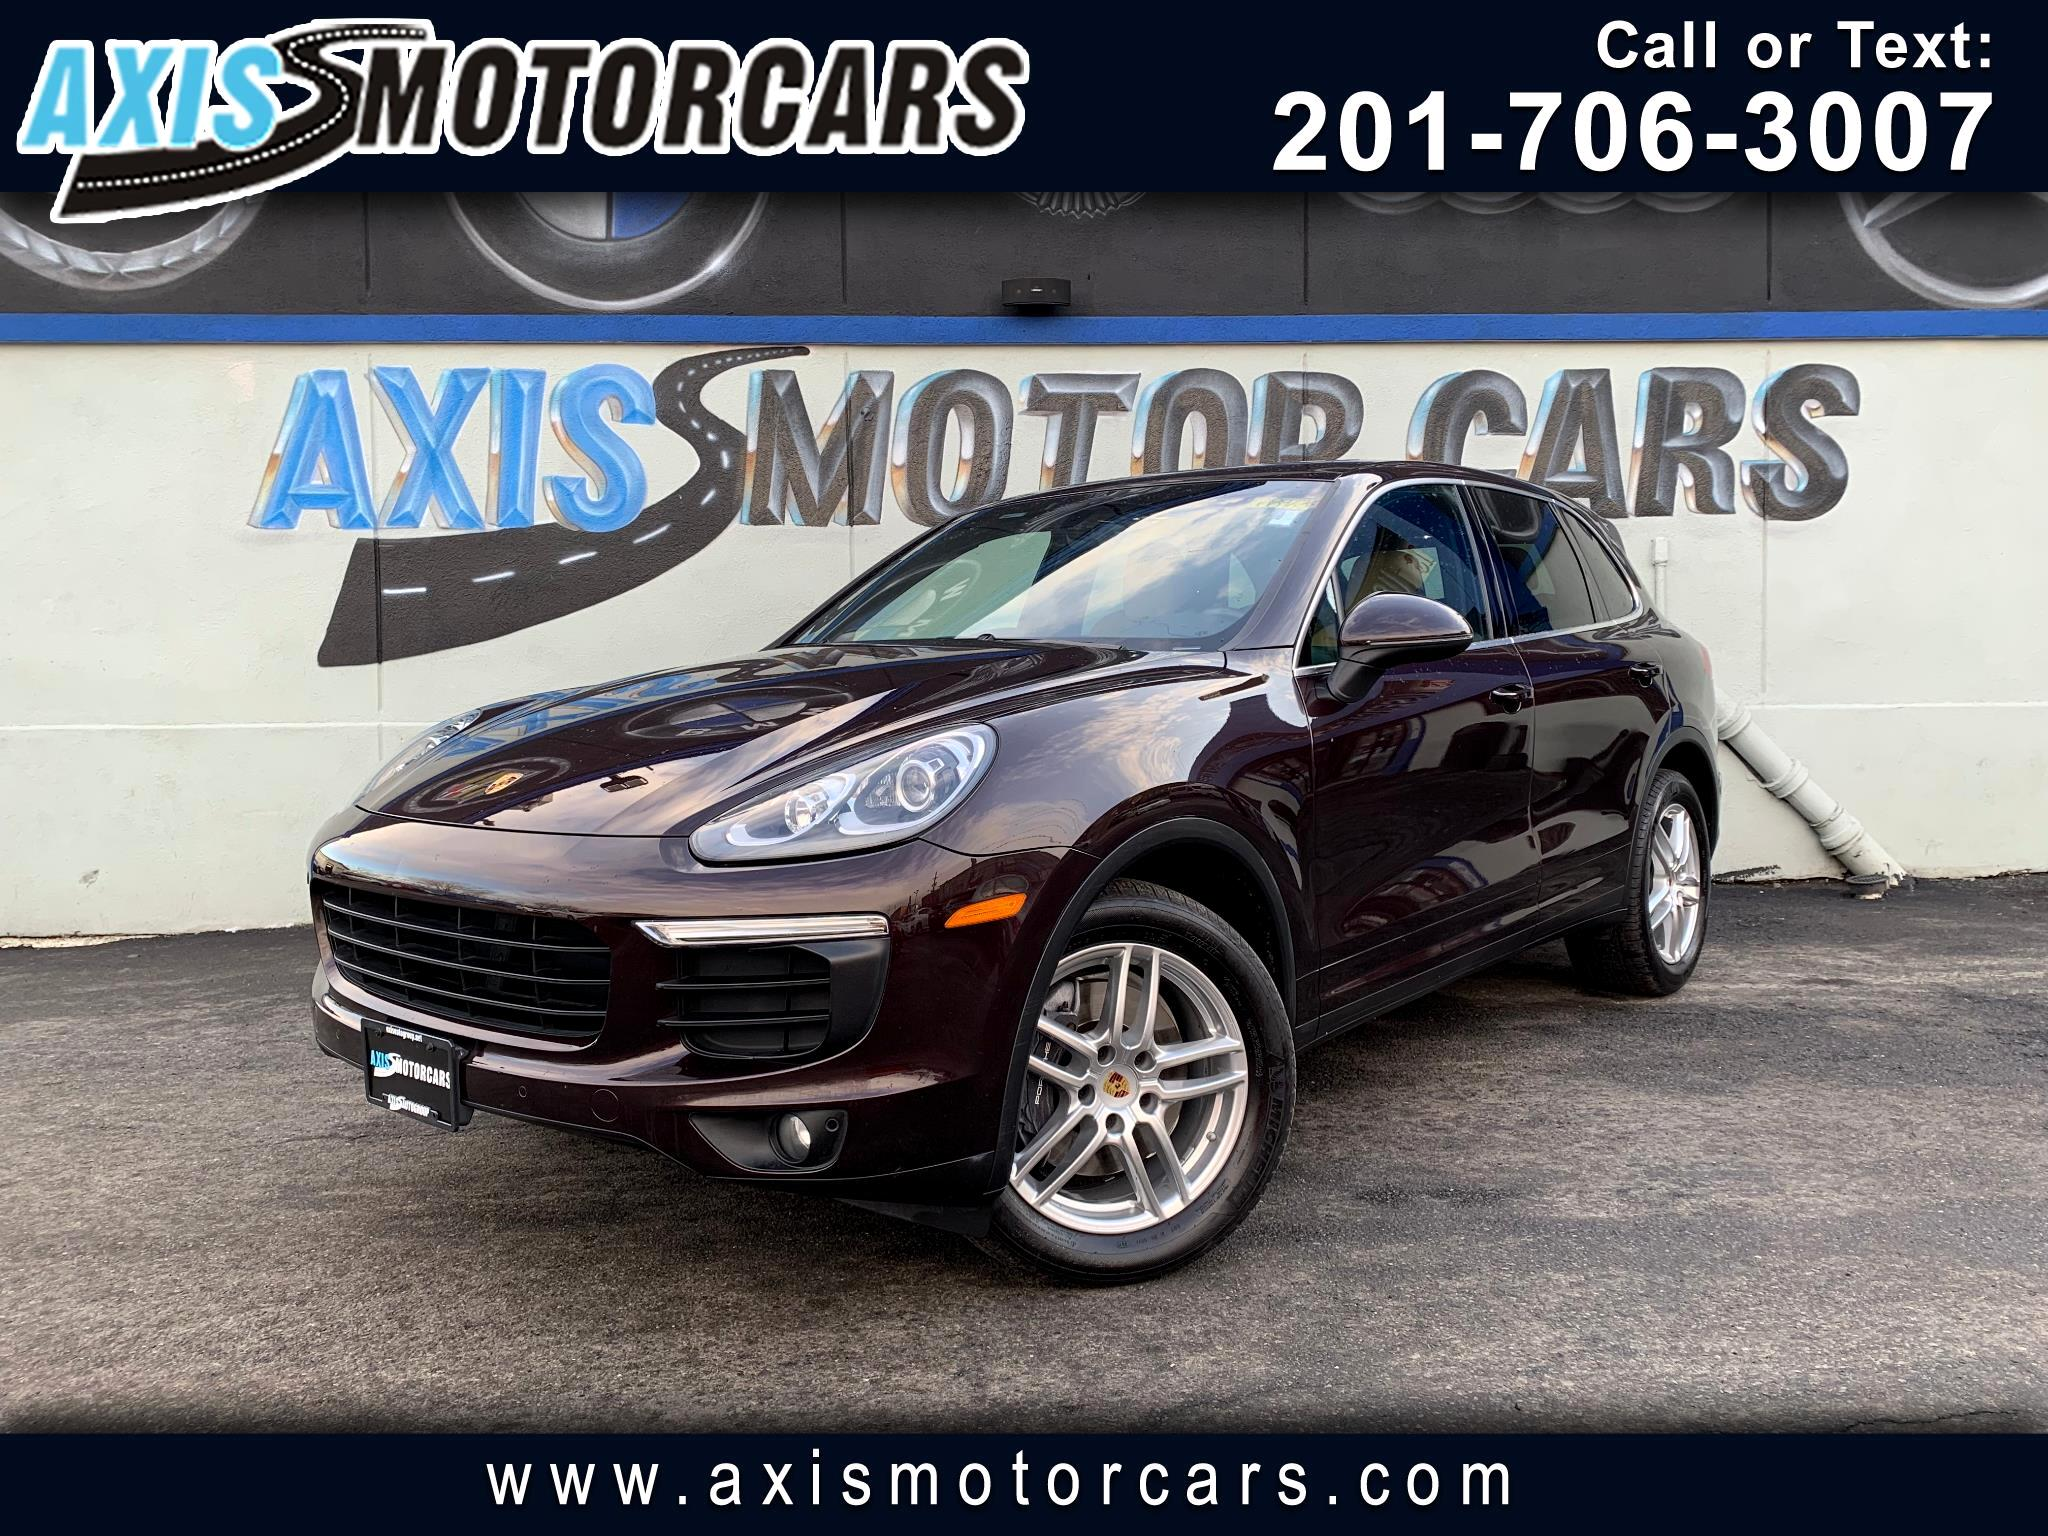 2016 Porsche Cayenne w/Navigation Bakup Camera Panoramic Roof